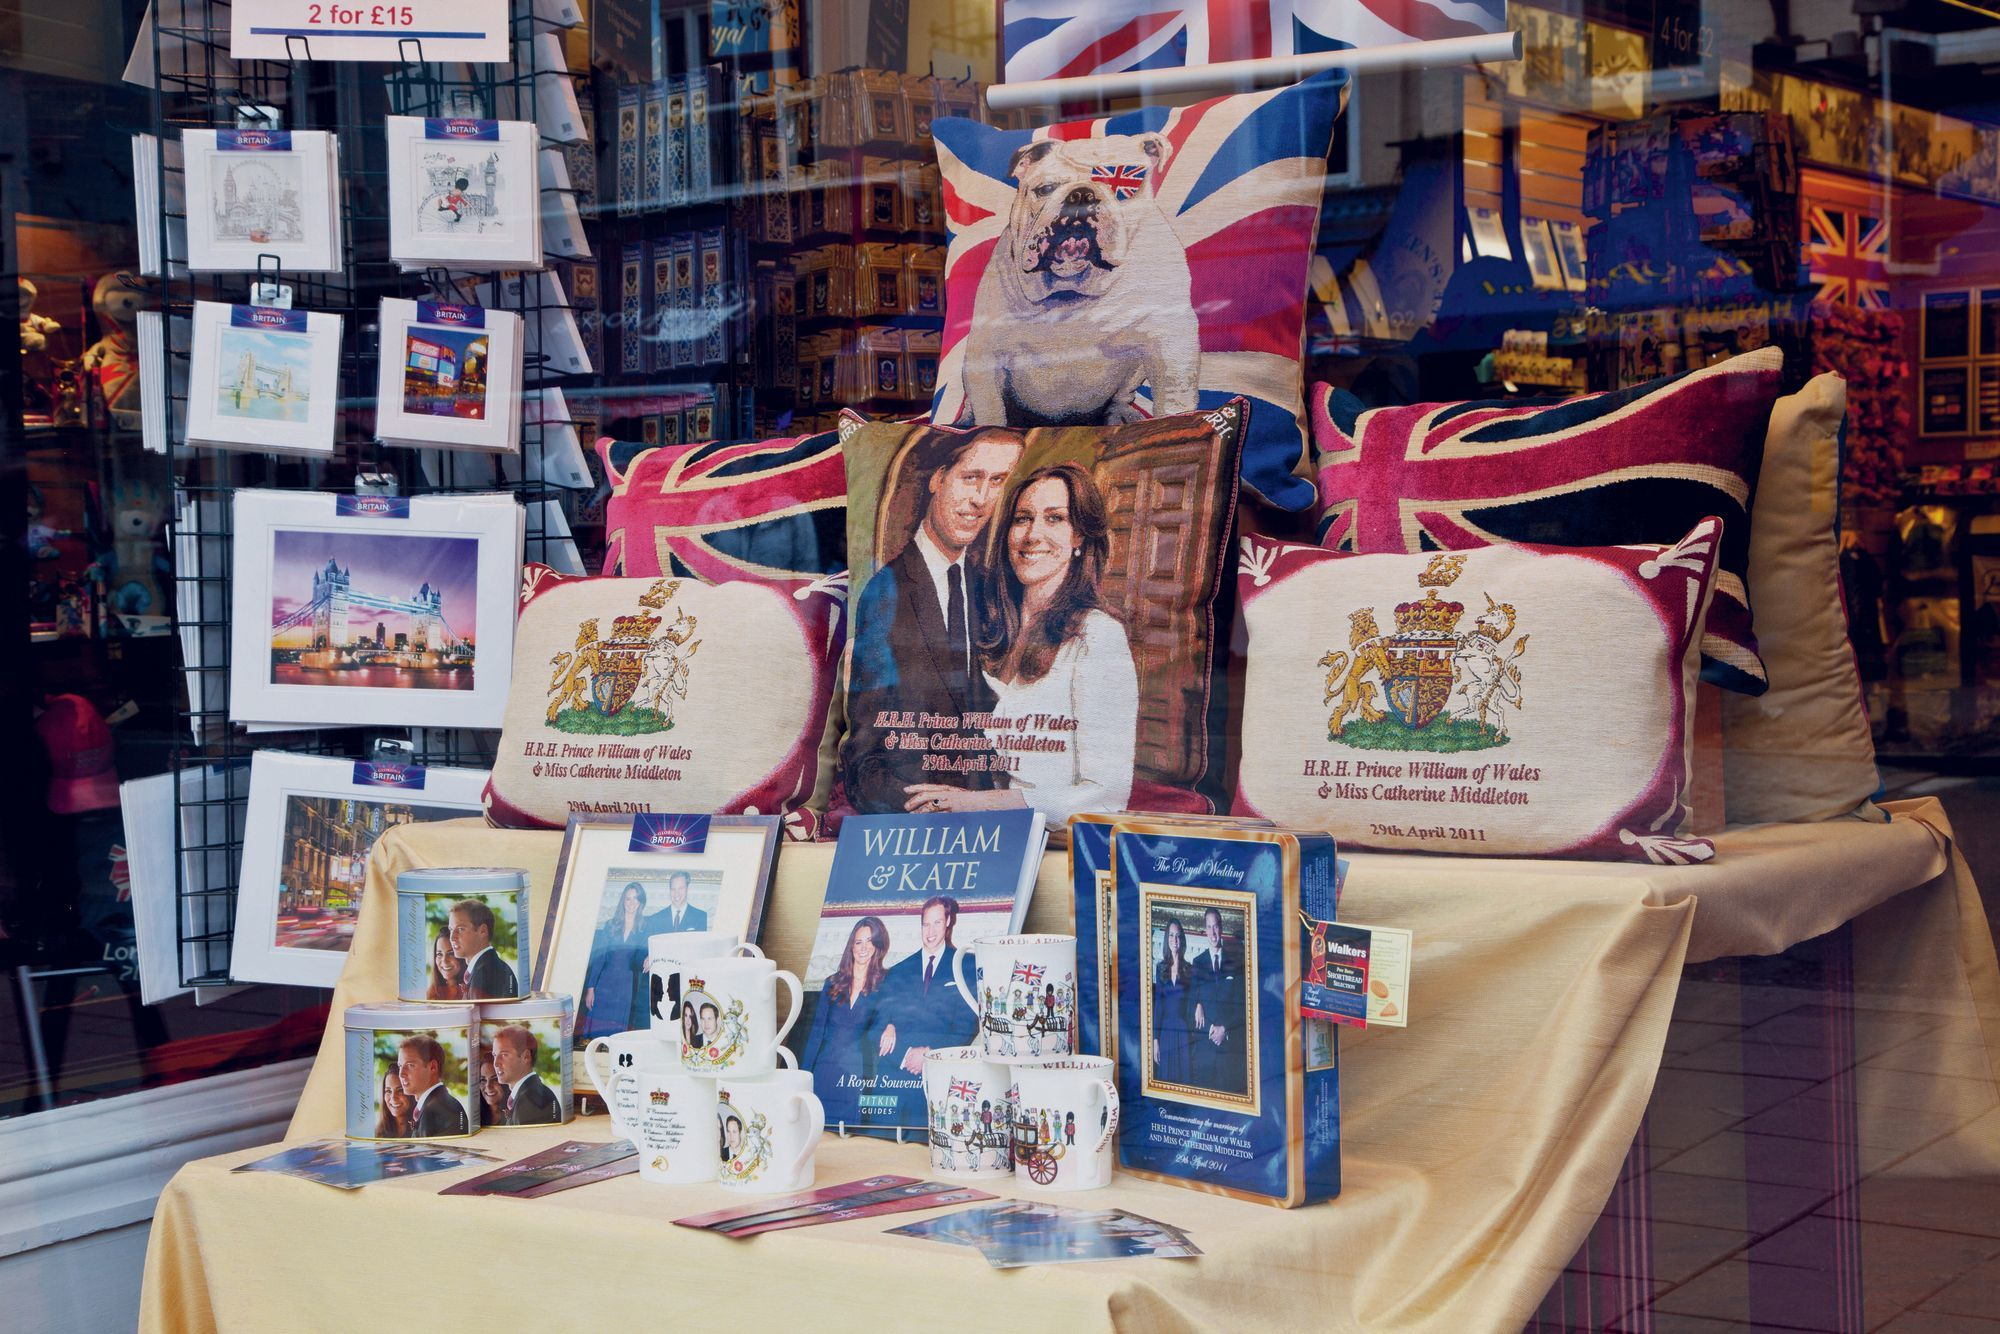 A souvenir shop window in Windsor, by Anna Stowe, 2011.